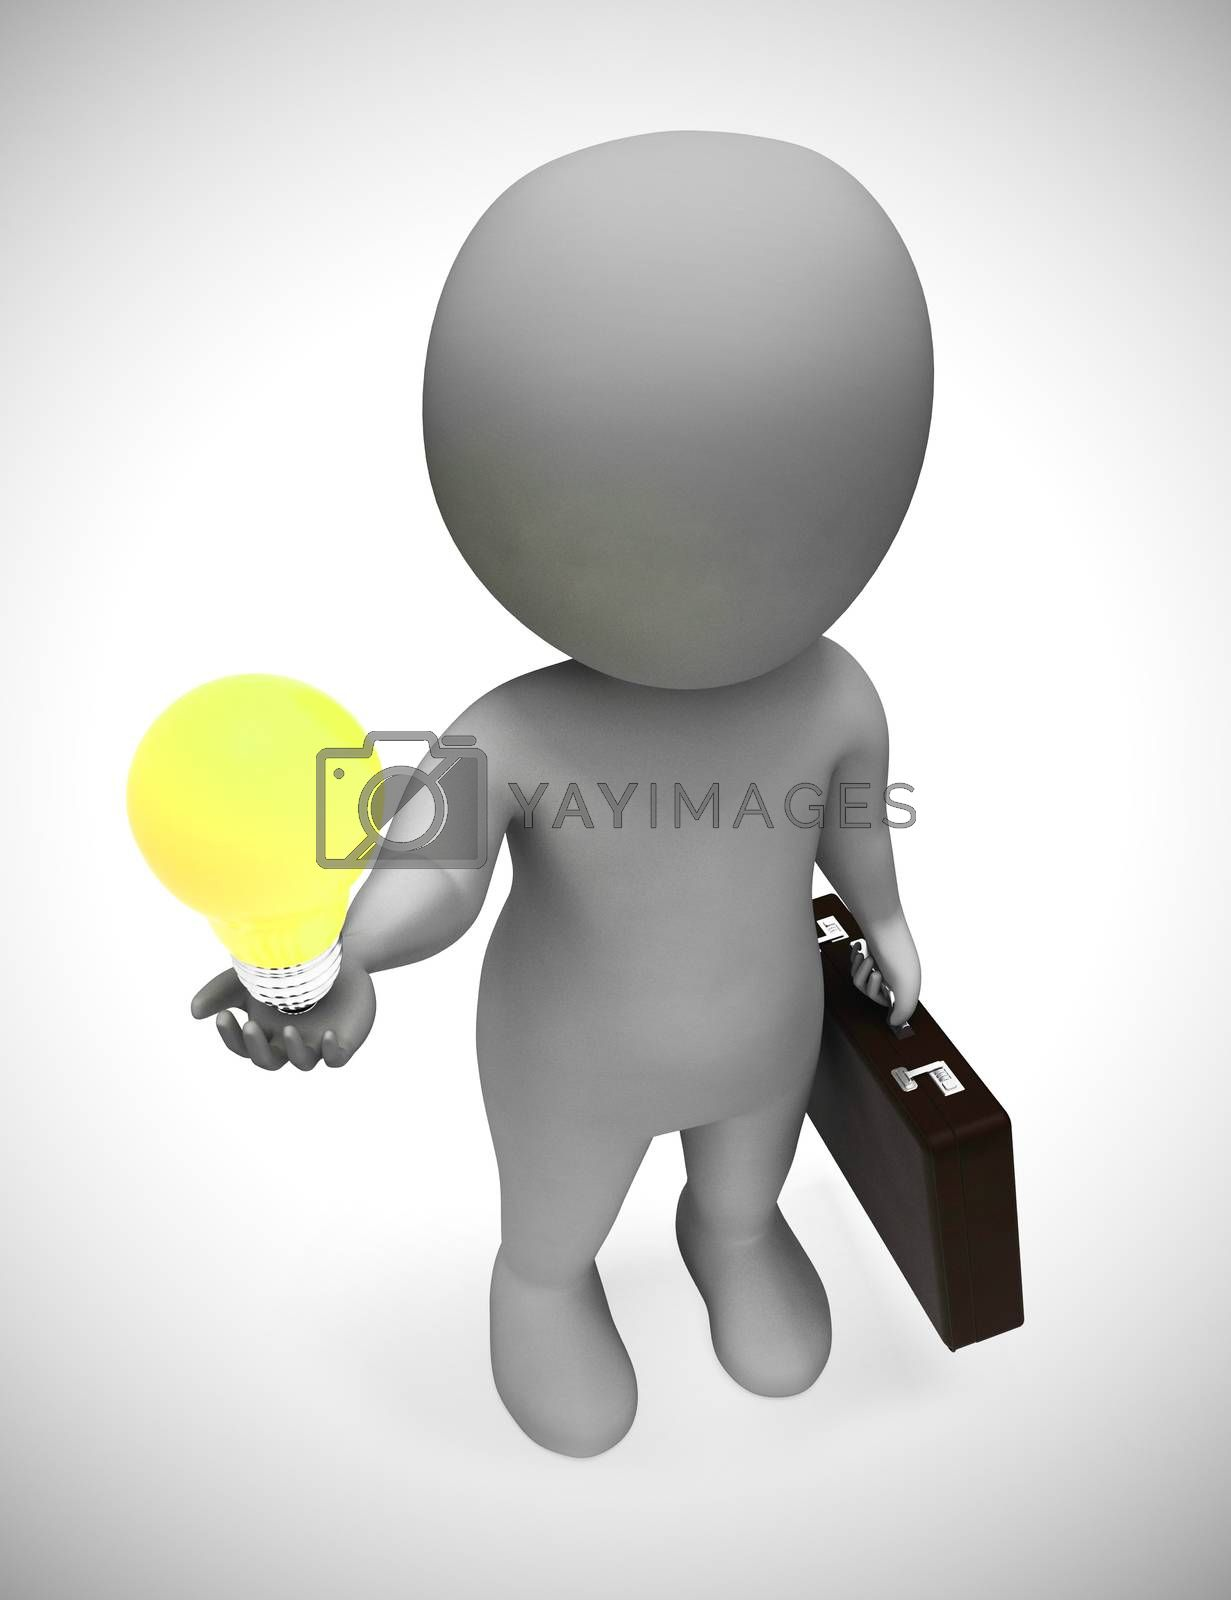 Royalty free image of Ideas and inspiration concept depicted by a light bulb - 3d illu by stuartmiles